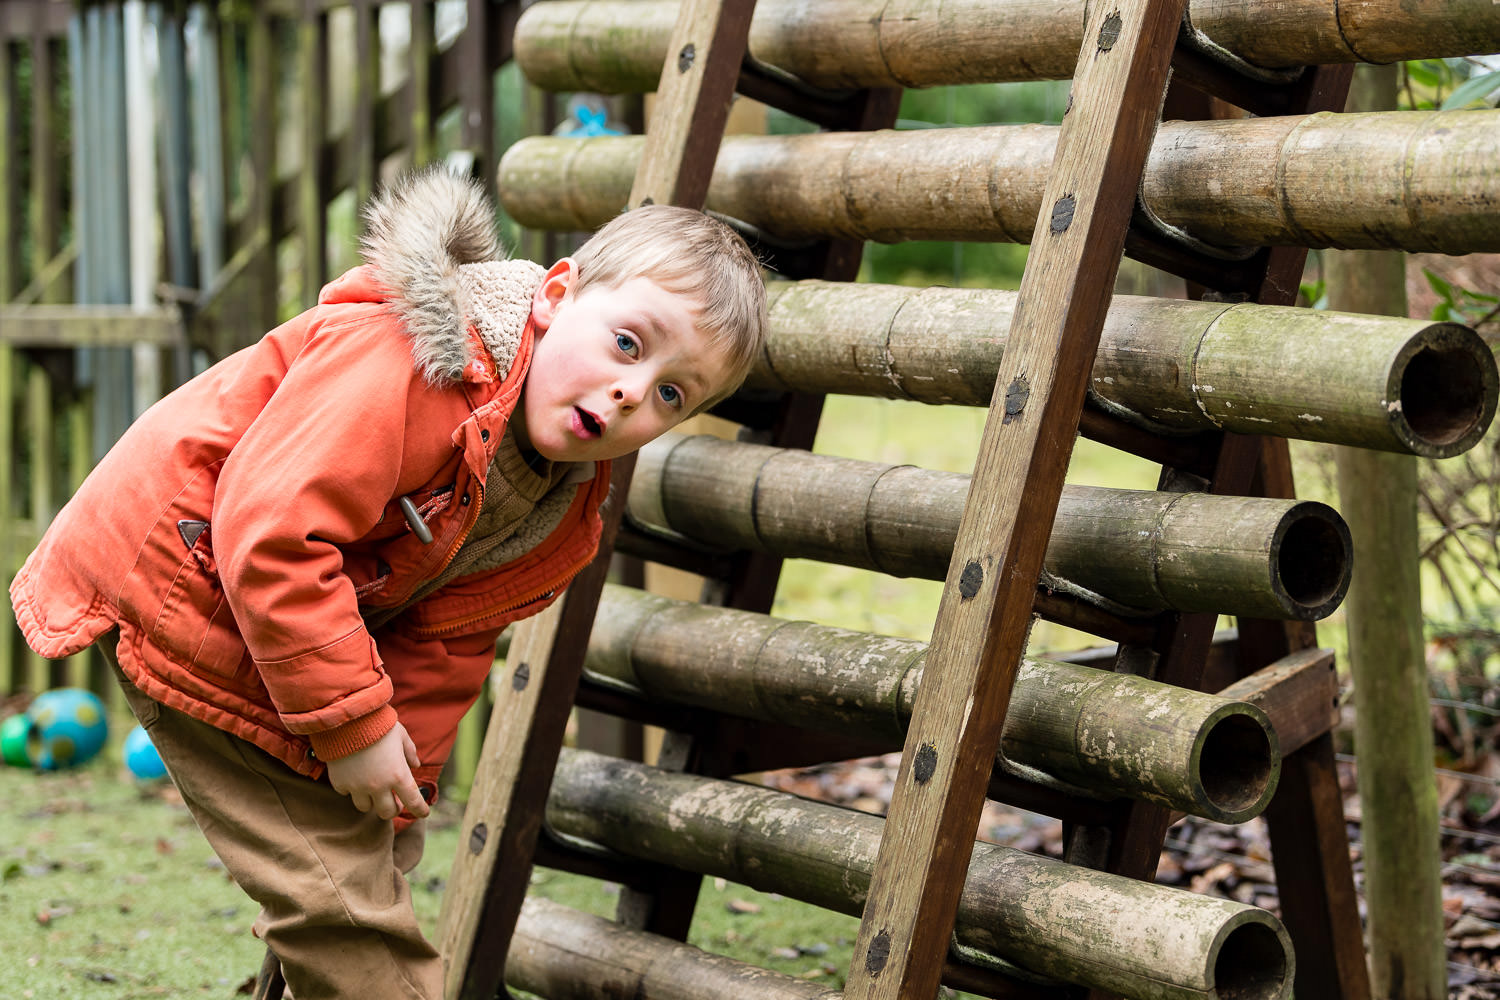 Boy playing on wooden pipes at nursery